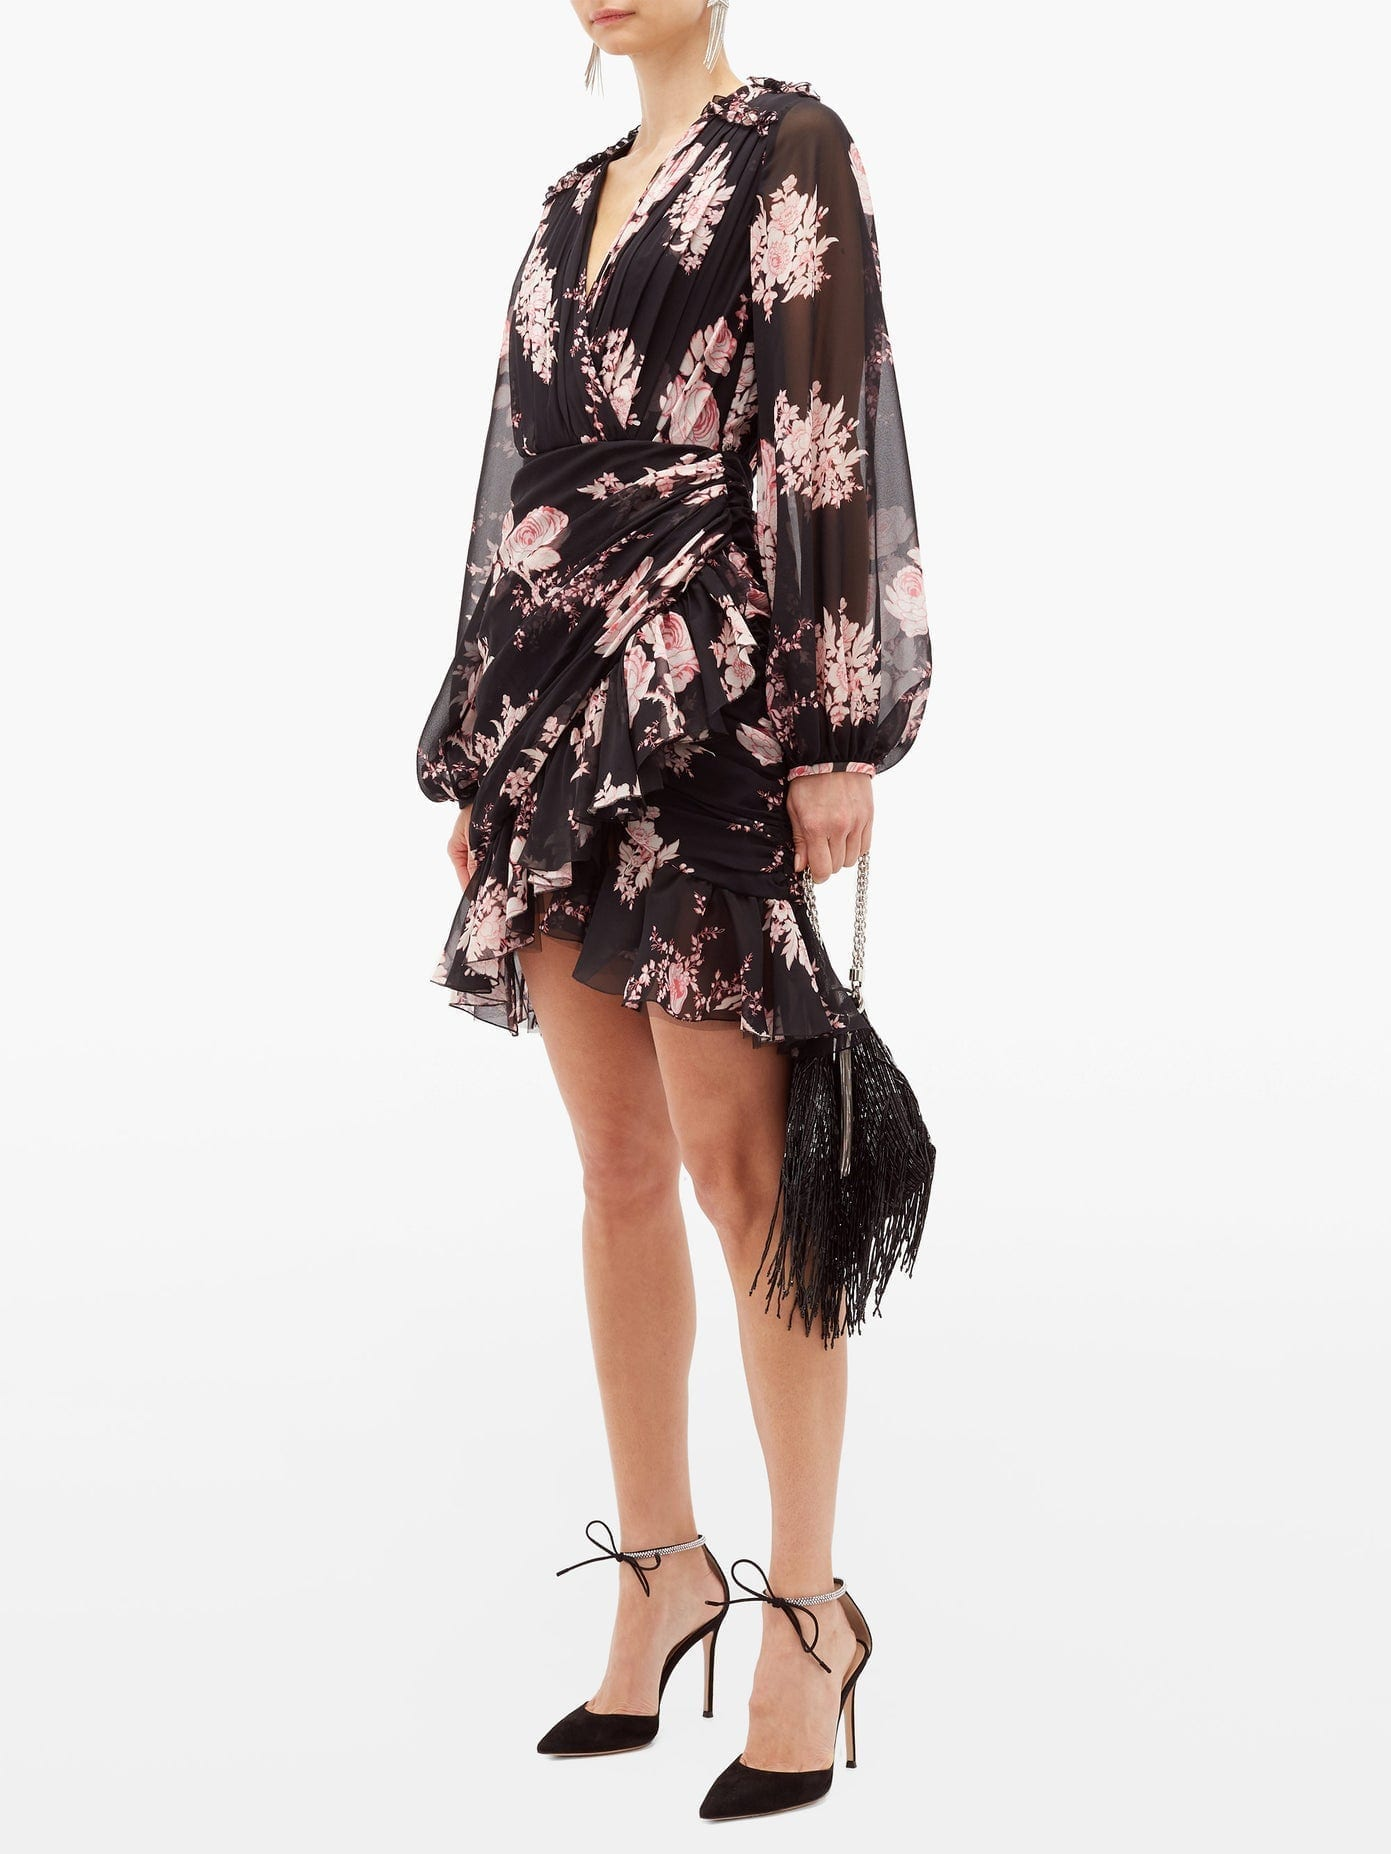 GIAMBATTISTA VALLI Floral-print Draped Silk-georgette Dress